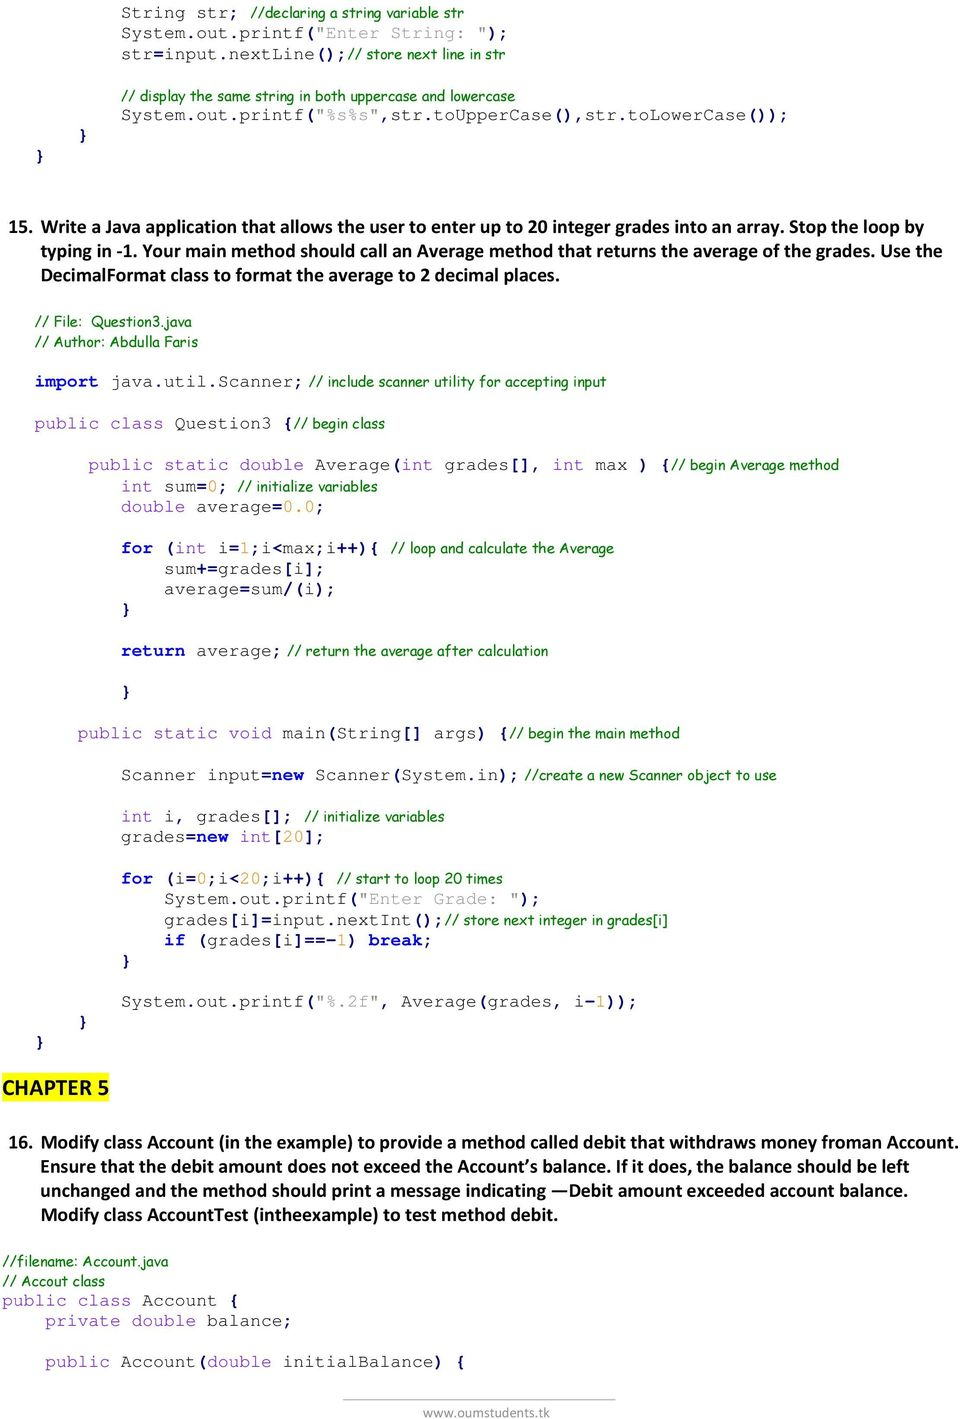 OBJECT ORIENTED PROGRAMMING IN JAVA EXERCISES - PDF